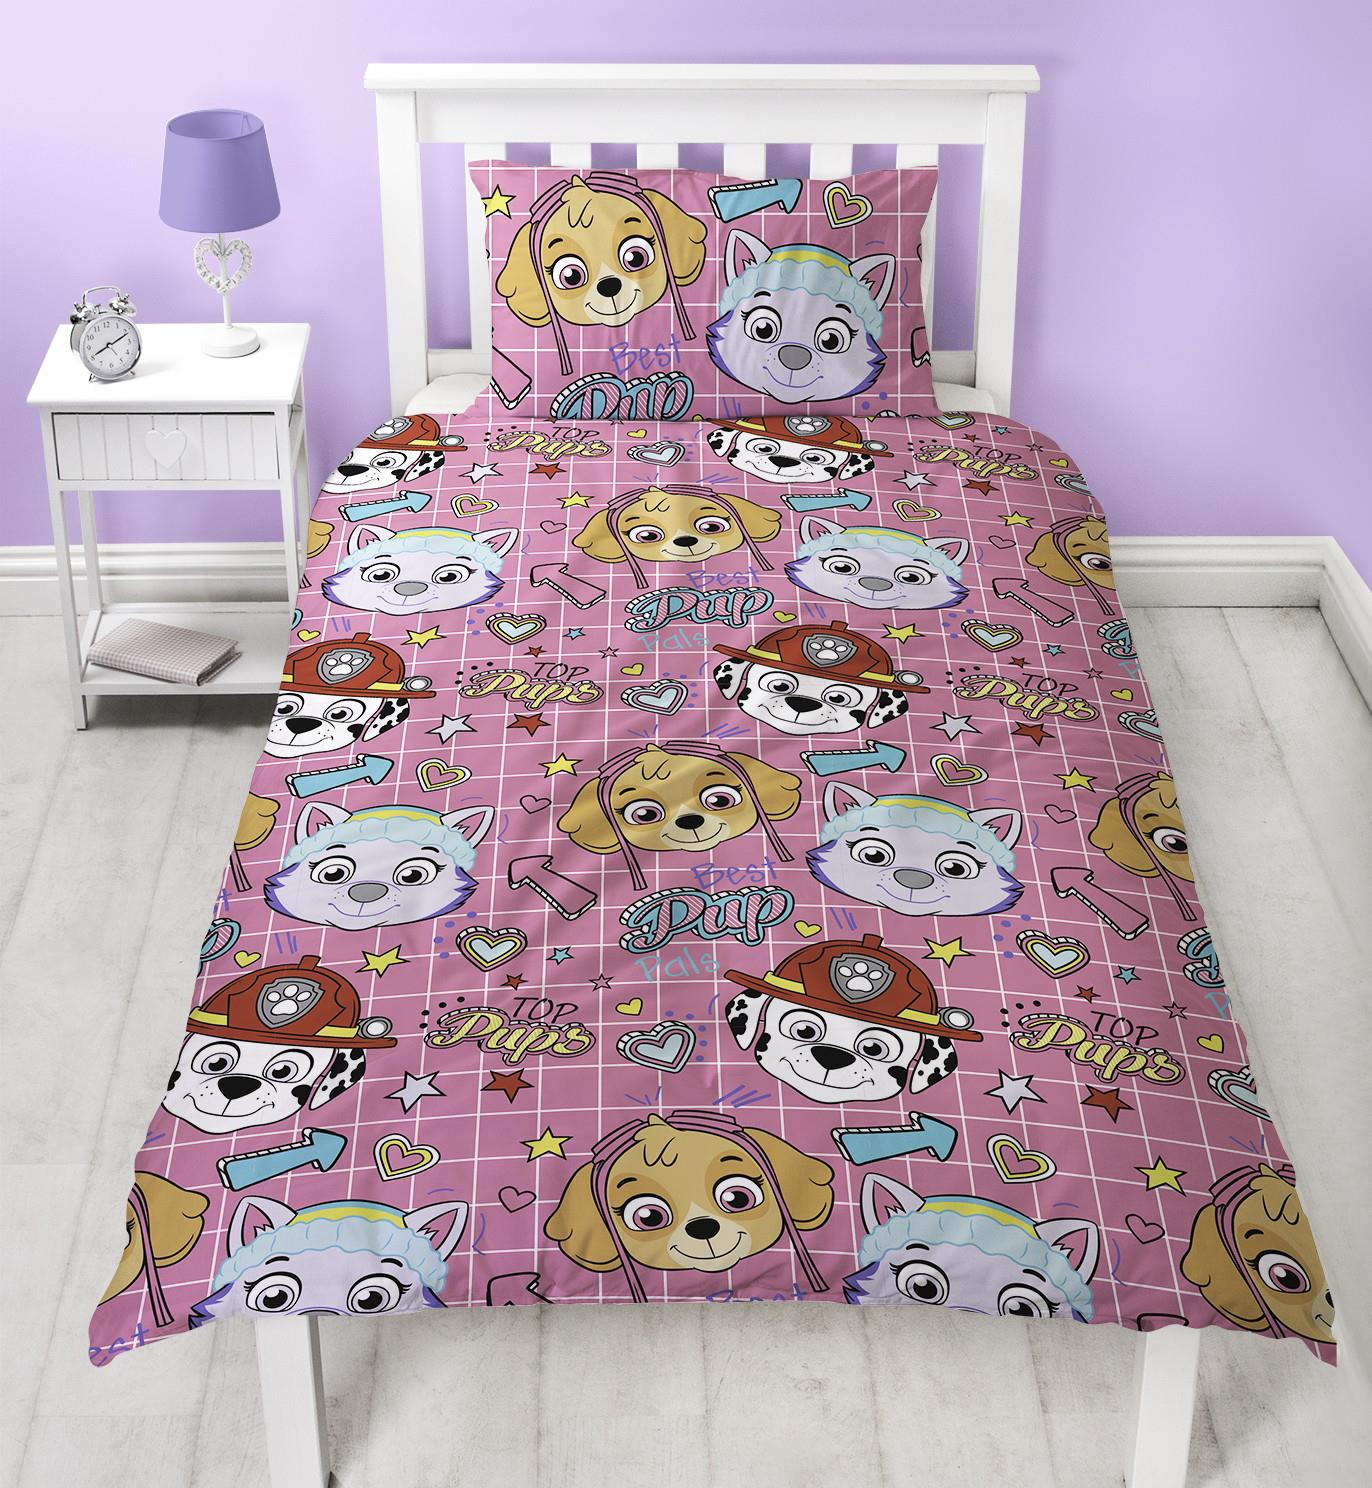 Official-Paw-Patrol-Licensed-Duvet-Covers-Single-Double-Chase-Skye-Marshall thumbnail 15